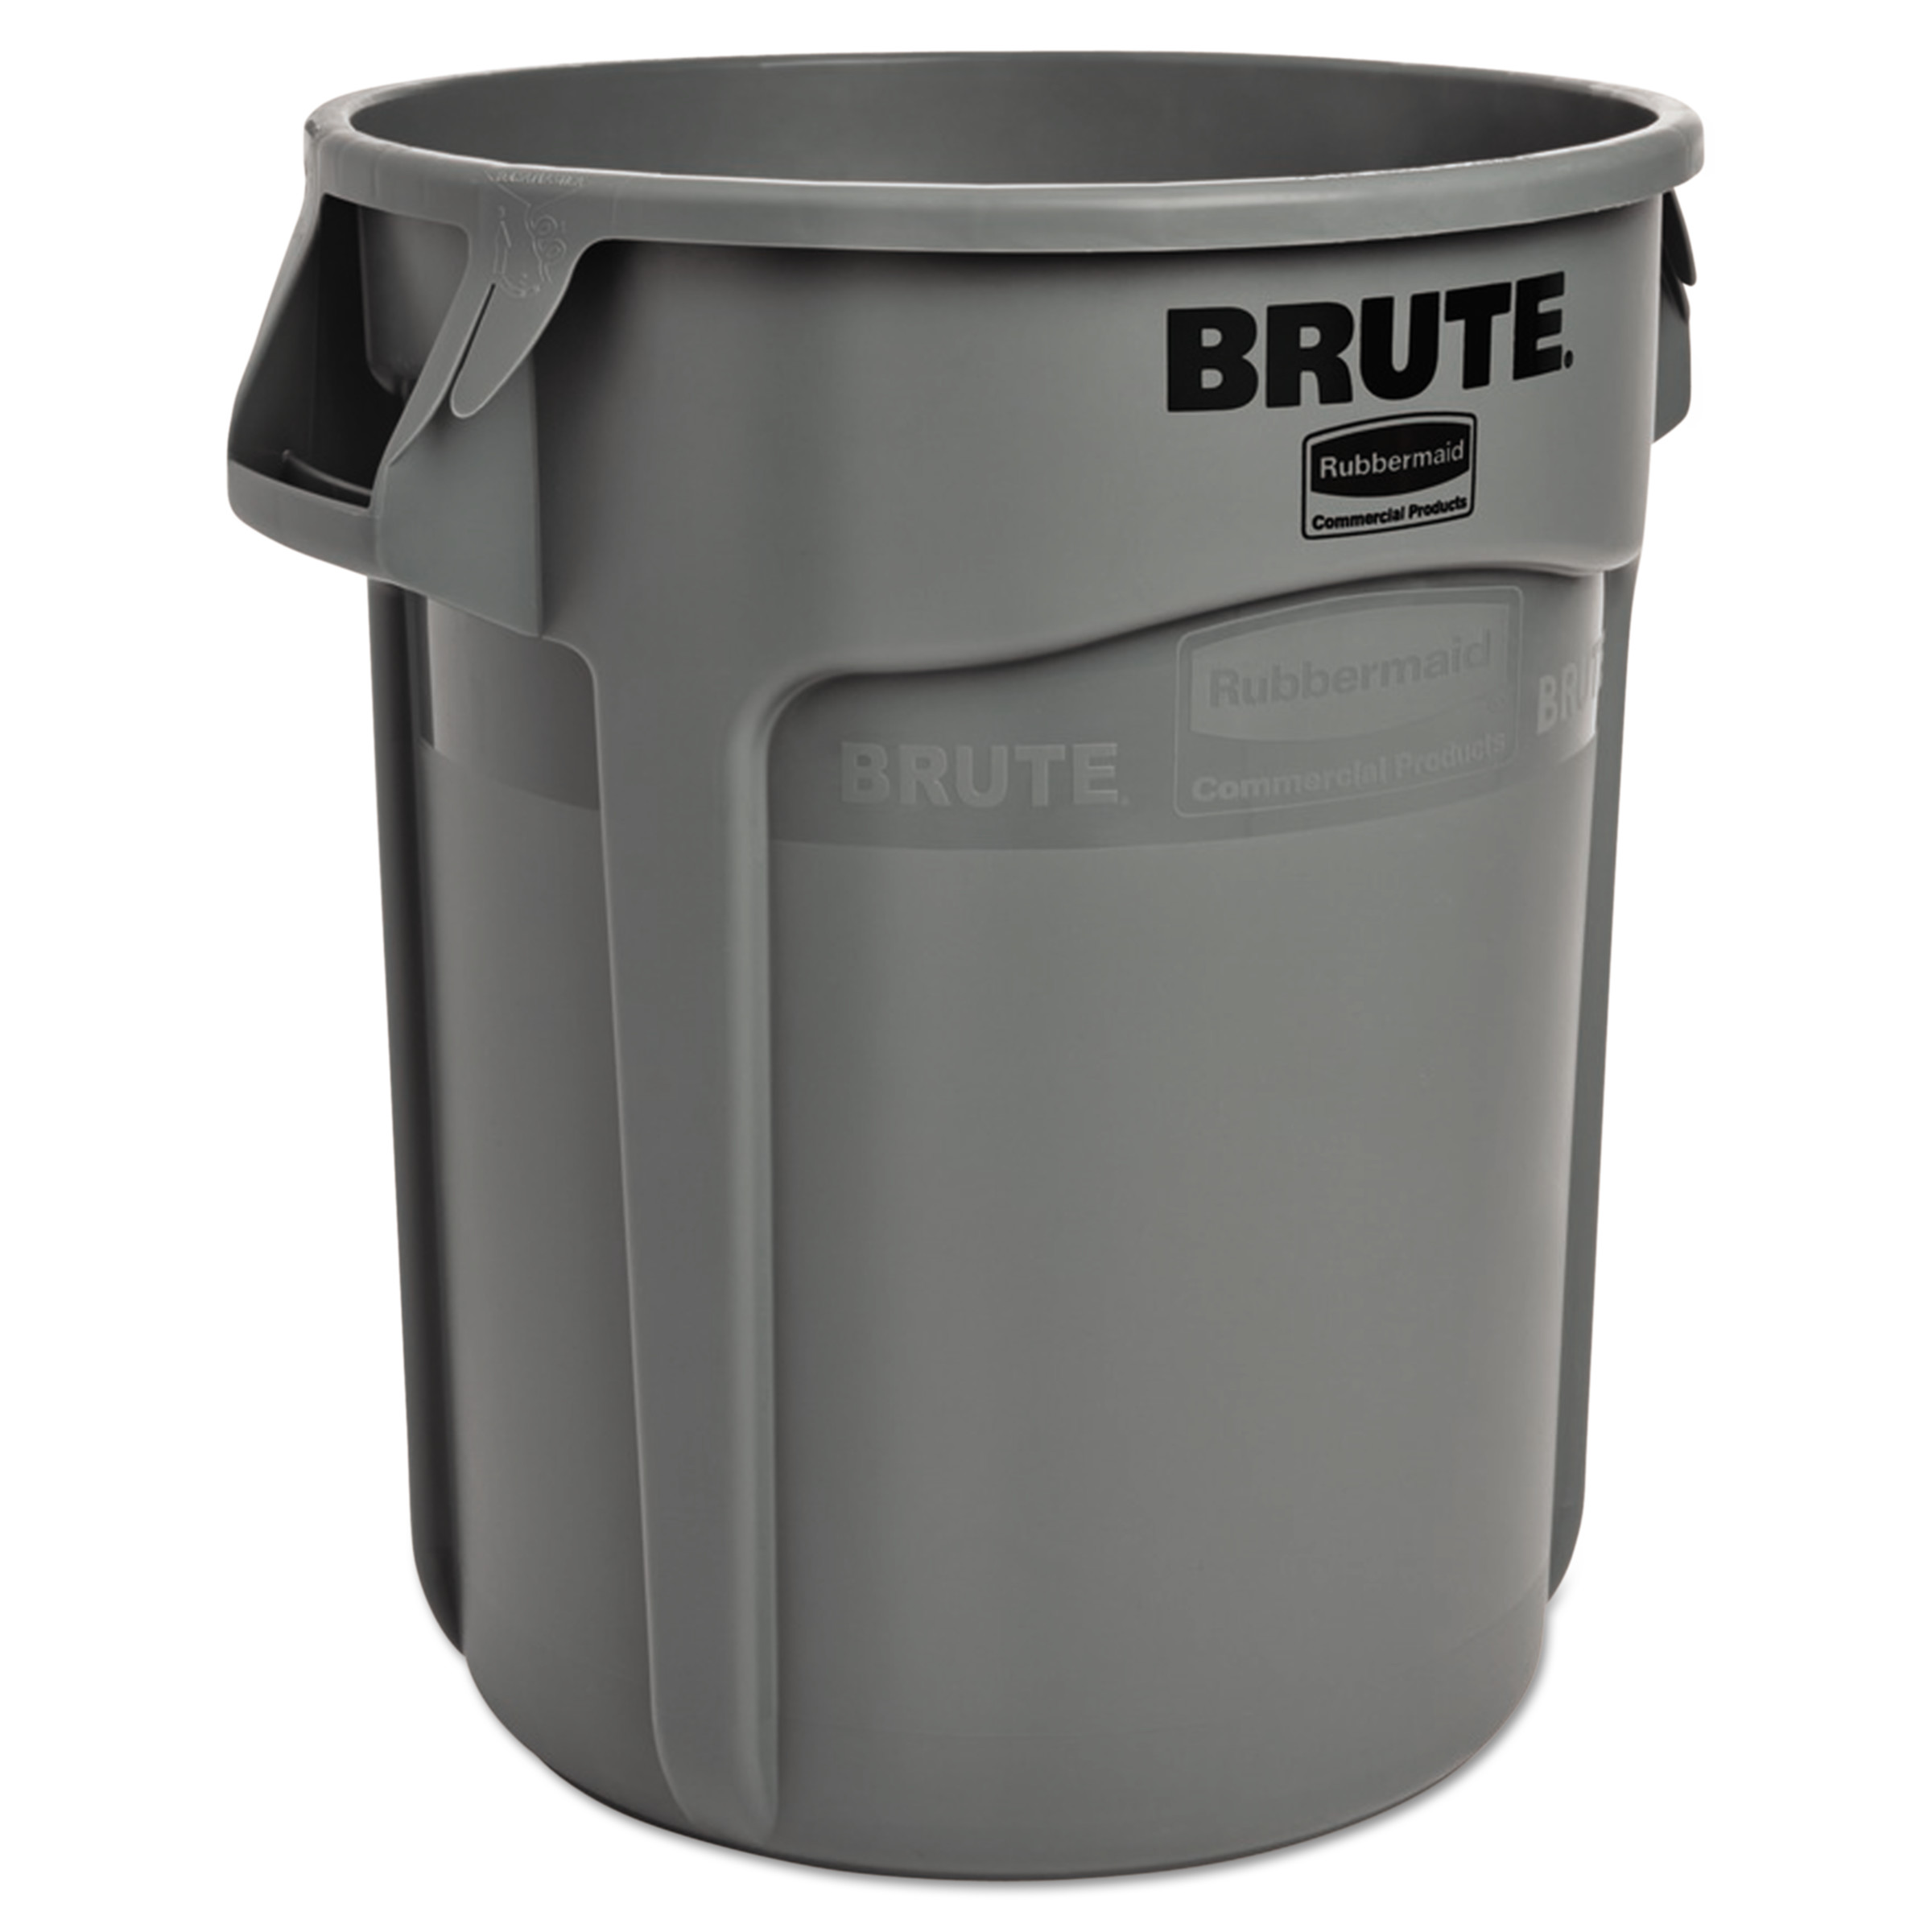 Rubbermaid Commercial Round Brute Container, Plastic, 10 gal, Gray